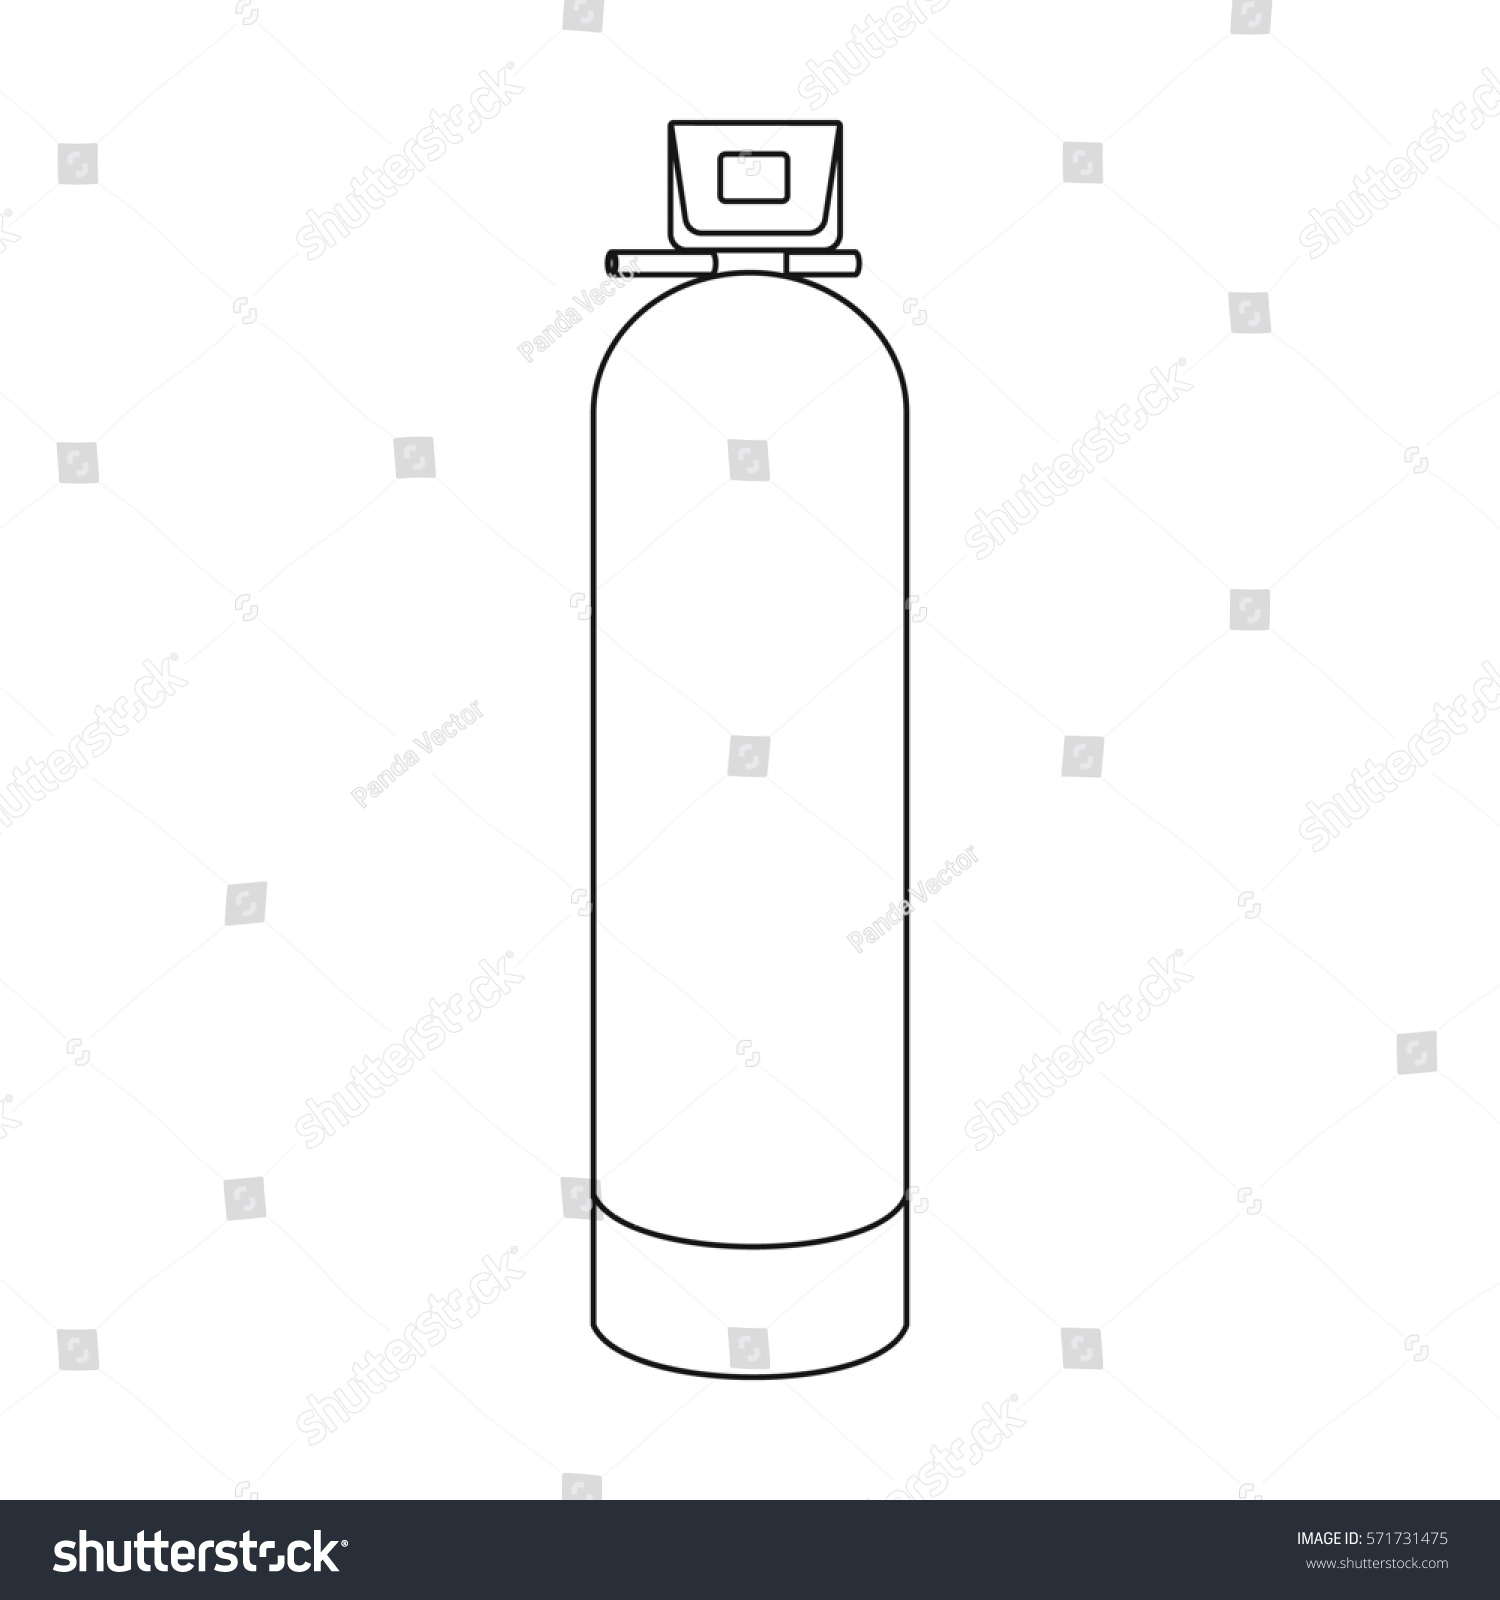 Royalty Free Stock Illustration Of Water Filter Machine Icon Outline